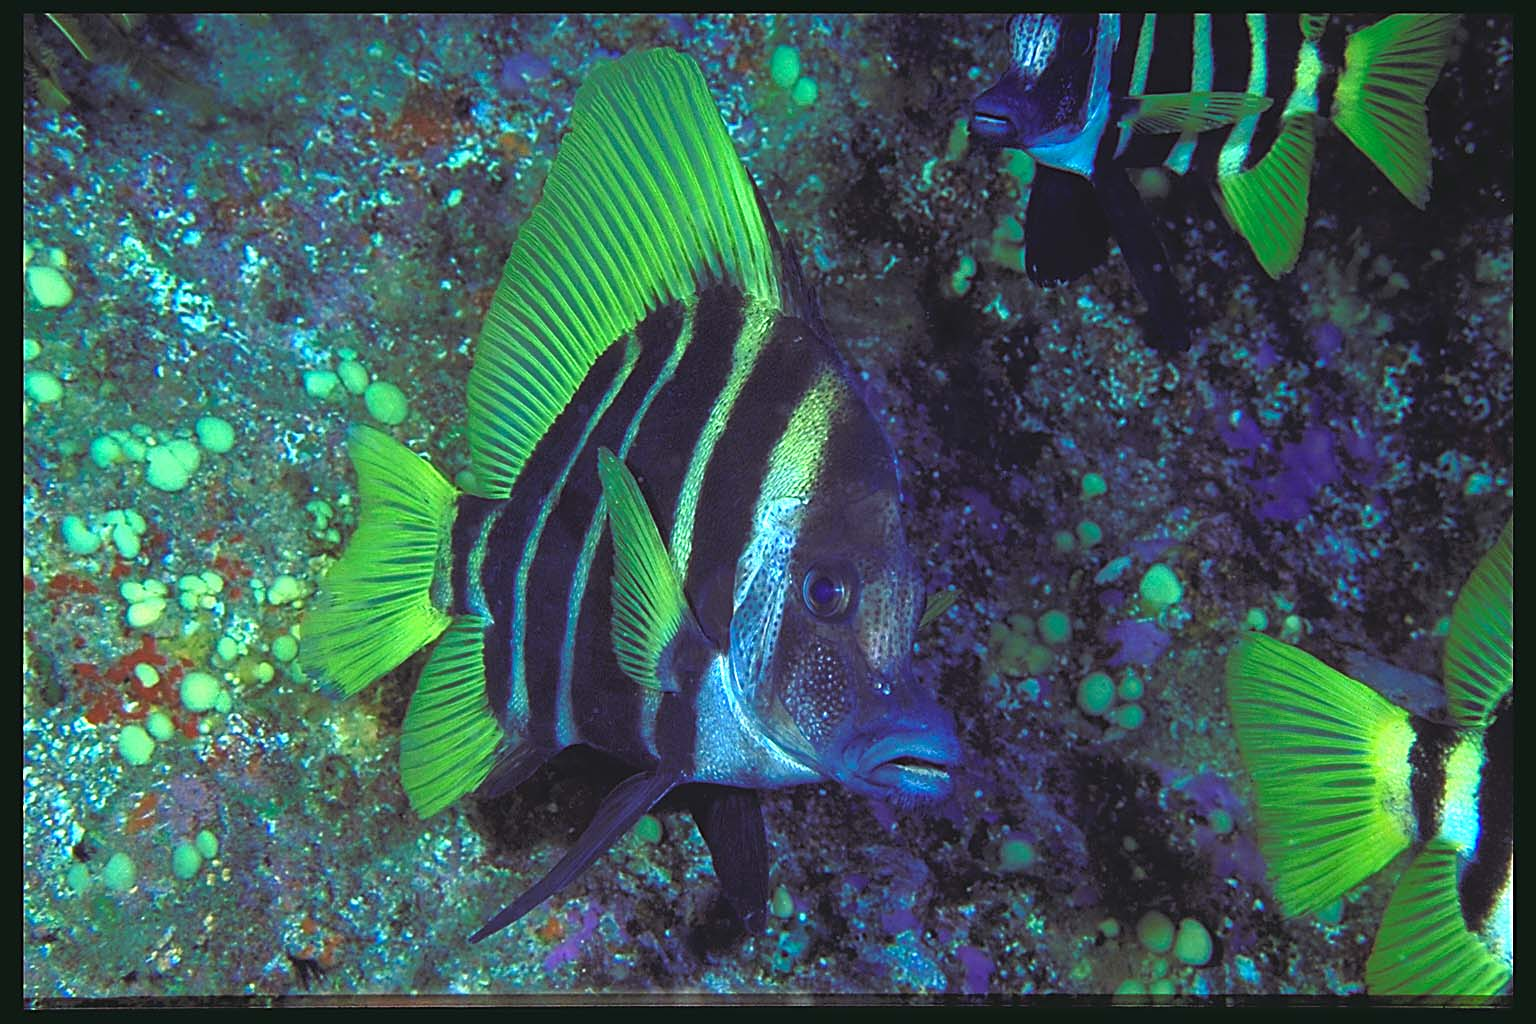 Striped saltwater fish striped saltwater fish fish for Striper fish pictures